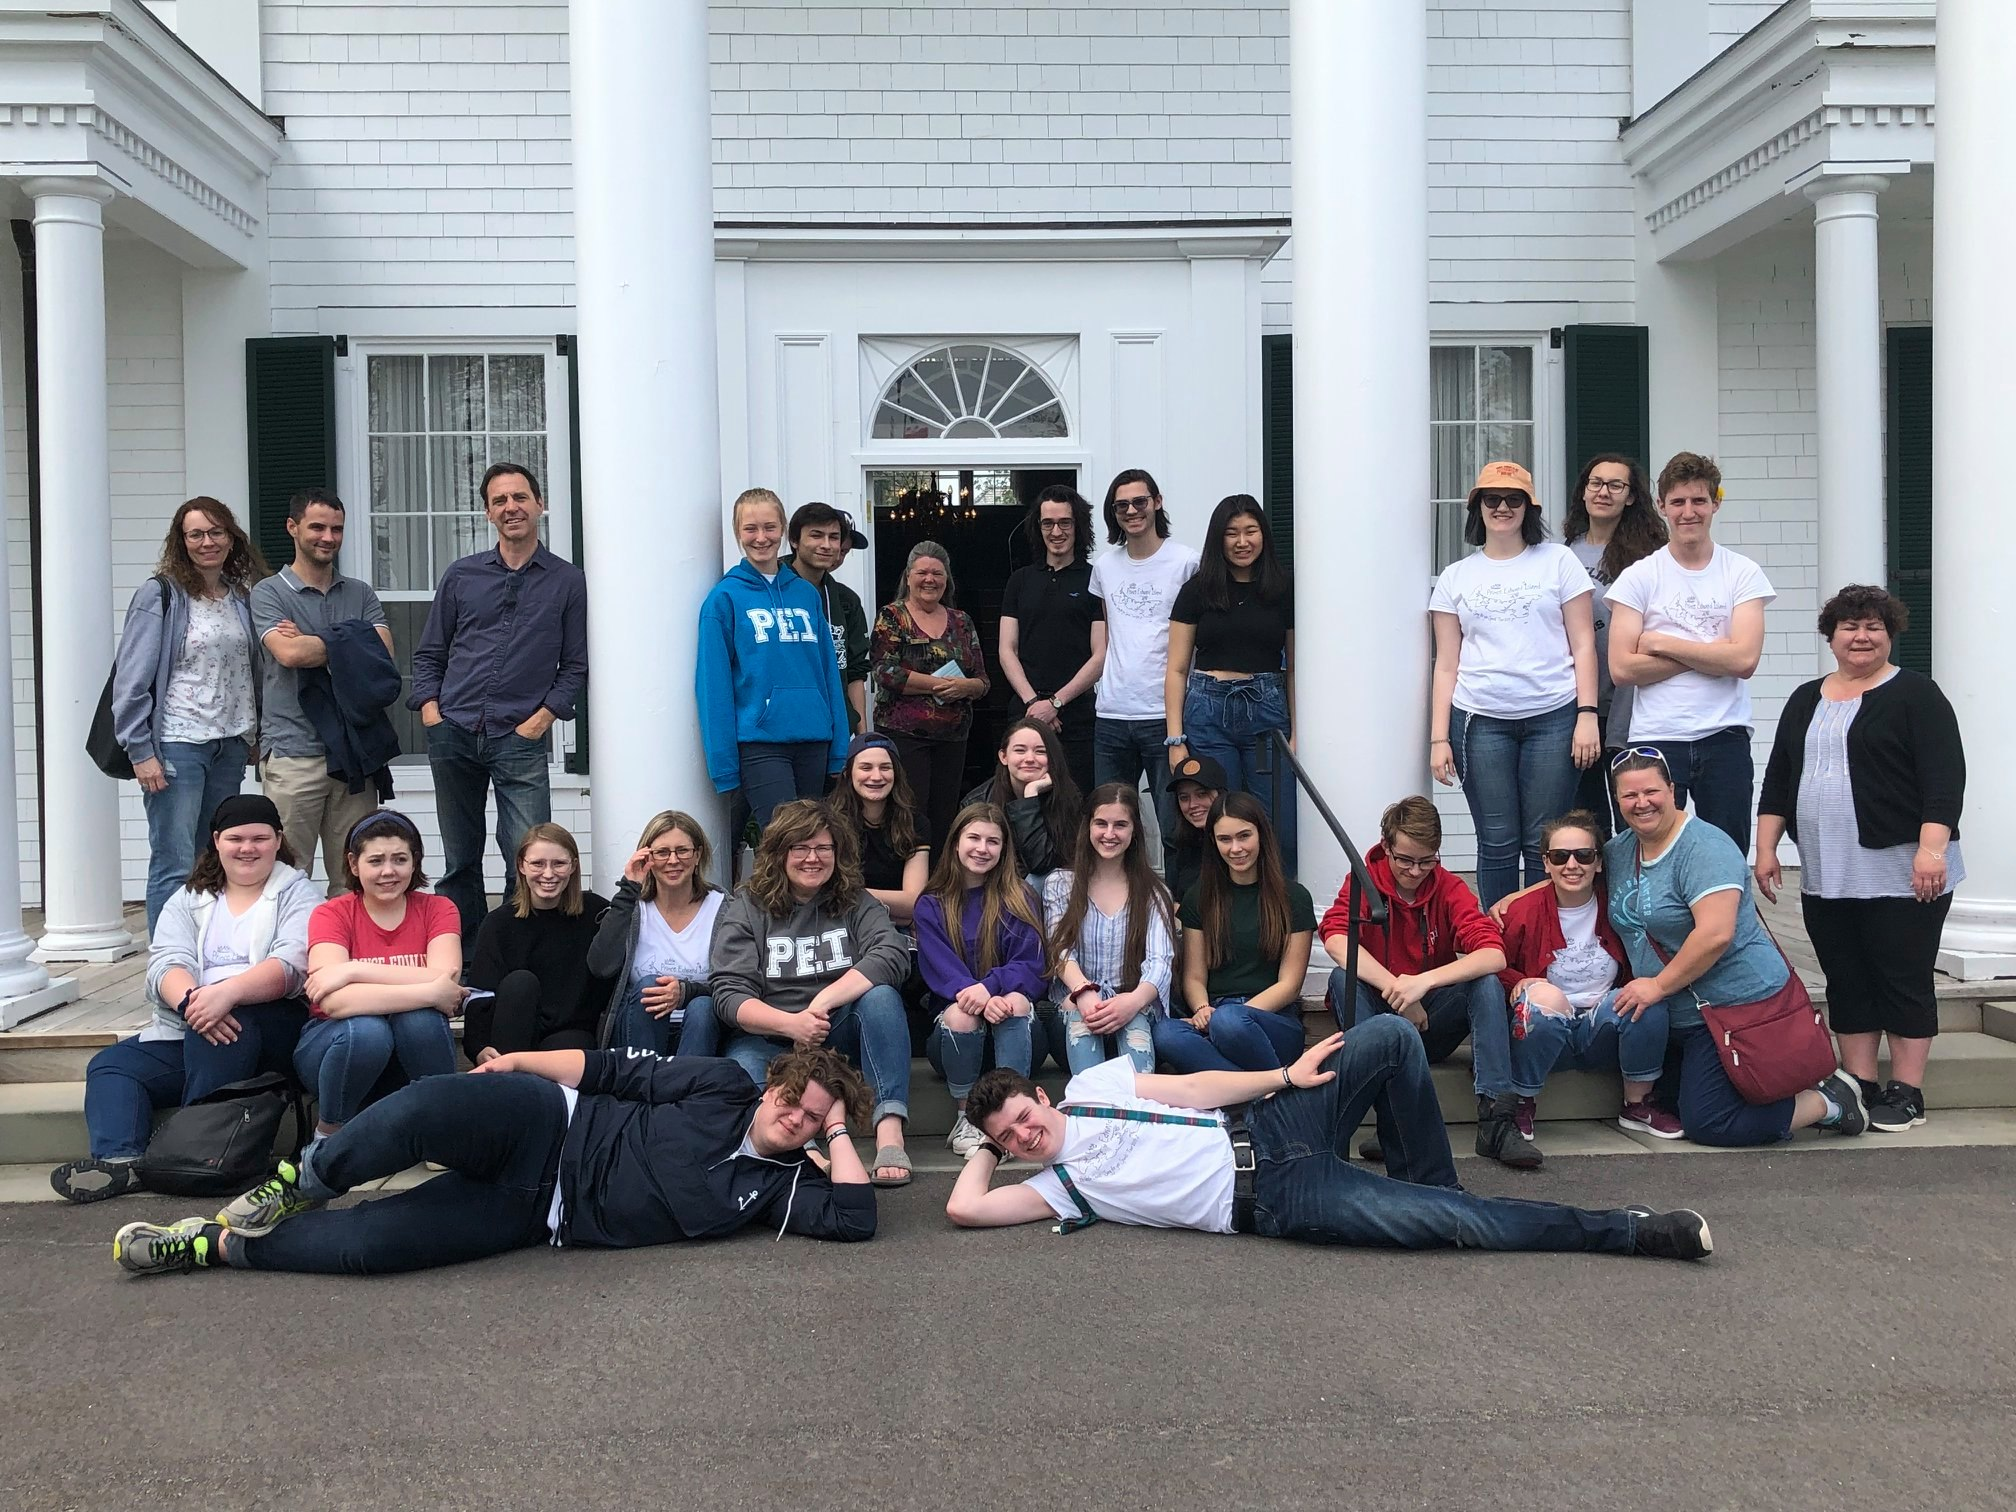 Neelin Choir on tour in PEI, May 2019